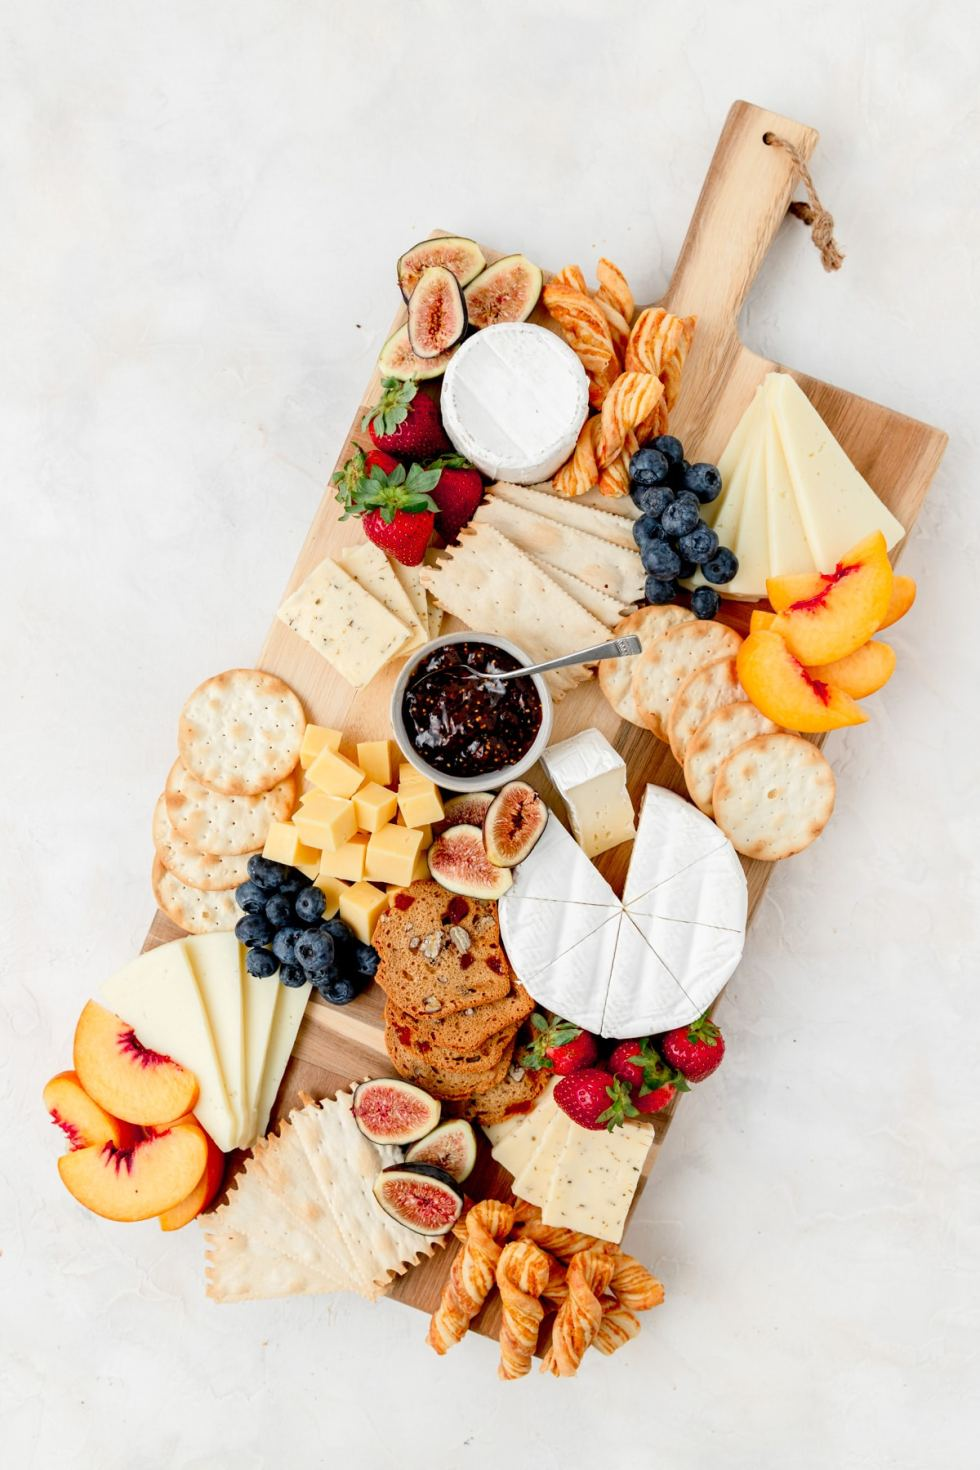 adding fruit to the cheeseboard